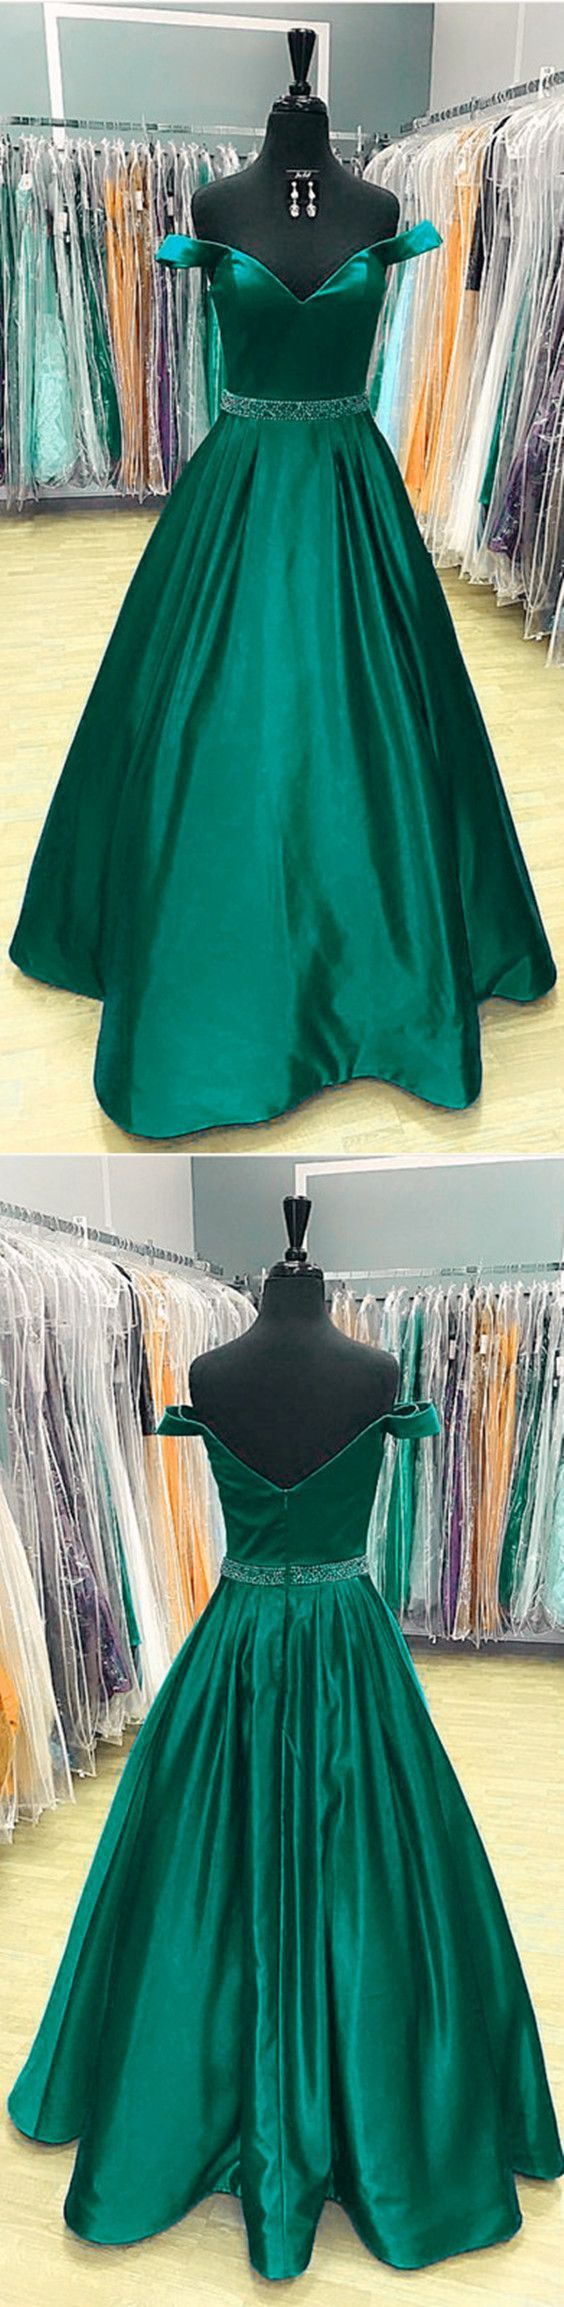 dark green prom dress,dark green evening dress,satin prom